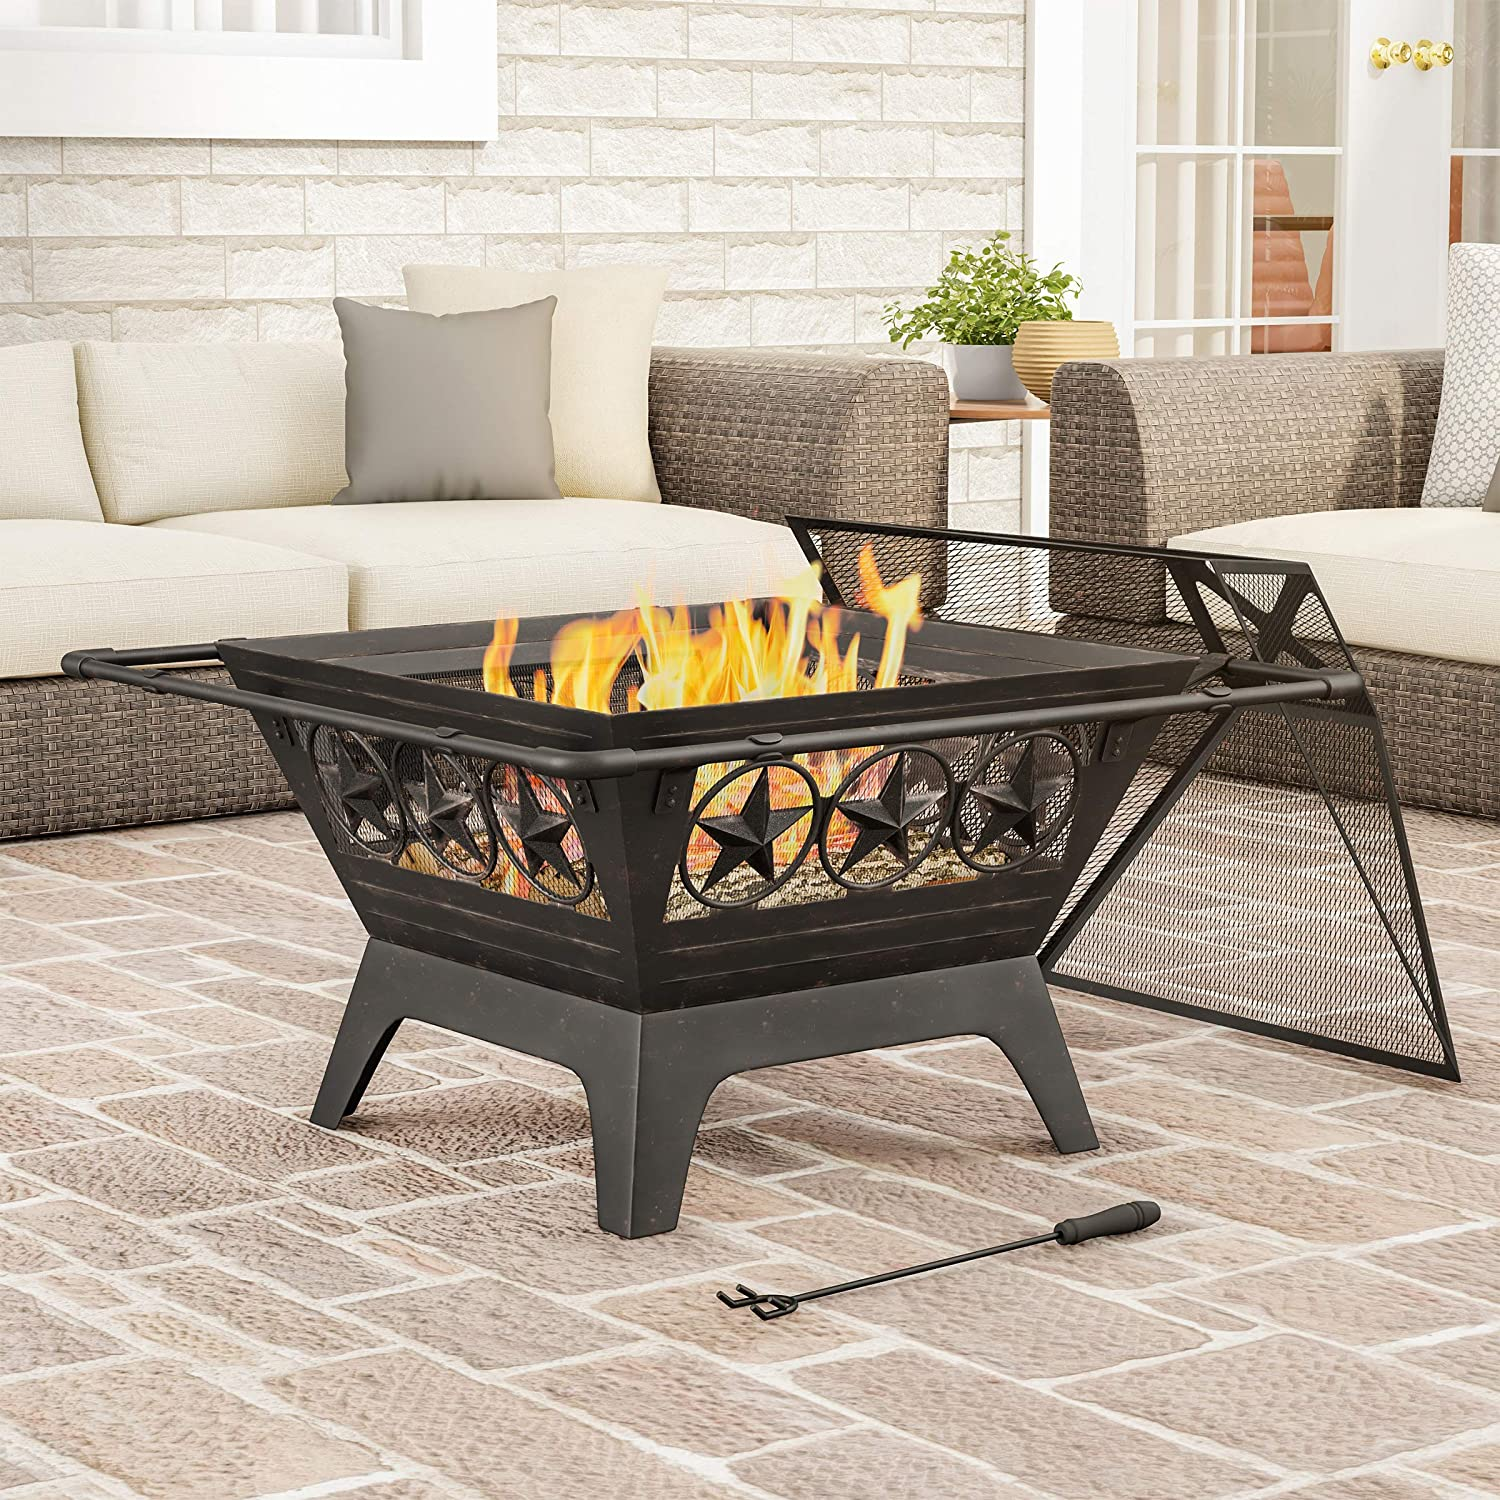 "Pure Garden 50-LG1203 Square Large Steel Bowl with Star Design, Mesh Spark Screen, Log Poker & Storage Cover 32"" Outdoor Deep Fire Pit, Black"